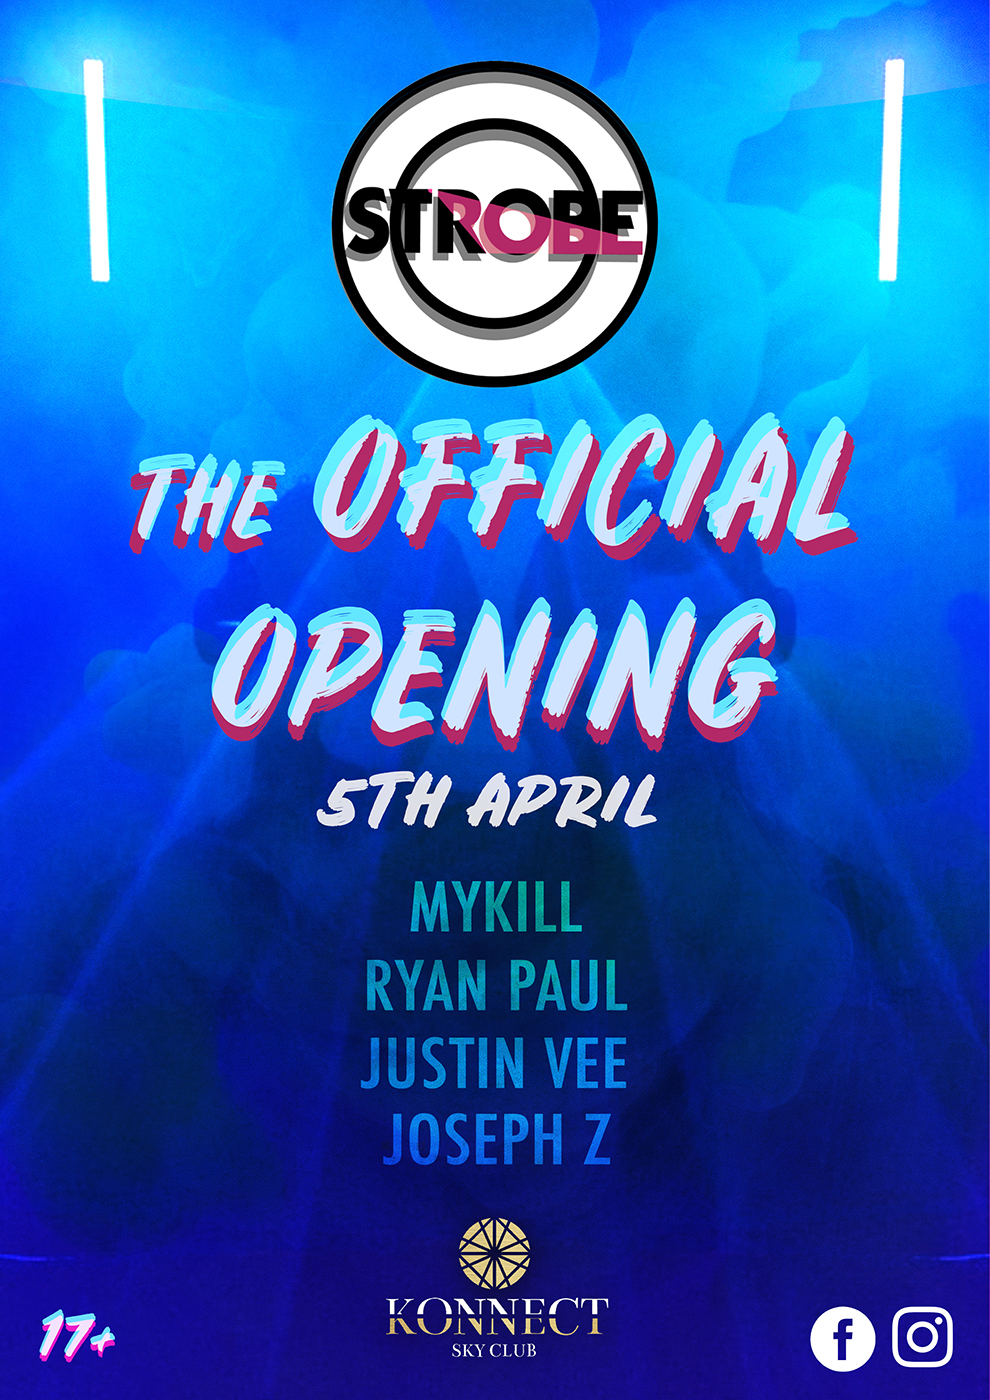 Strobe - The Official Opening flyer